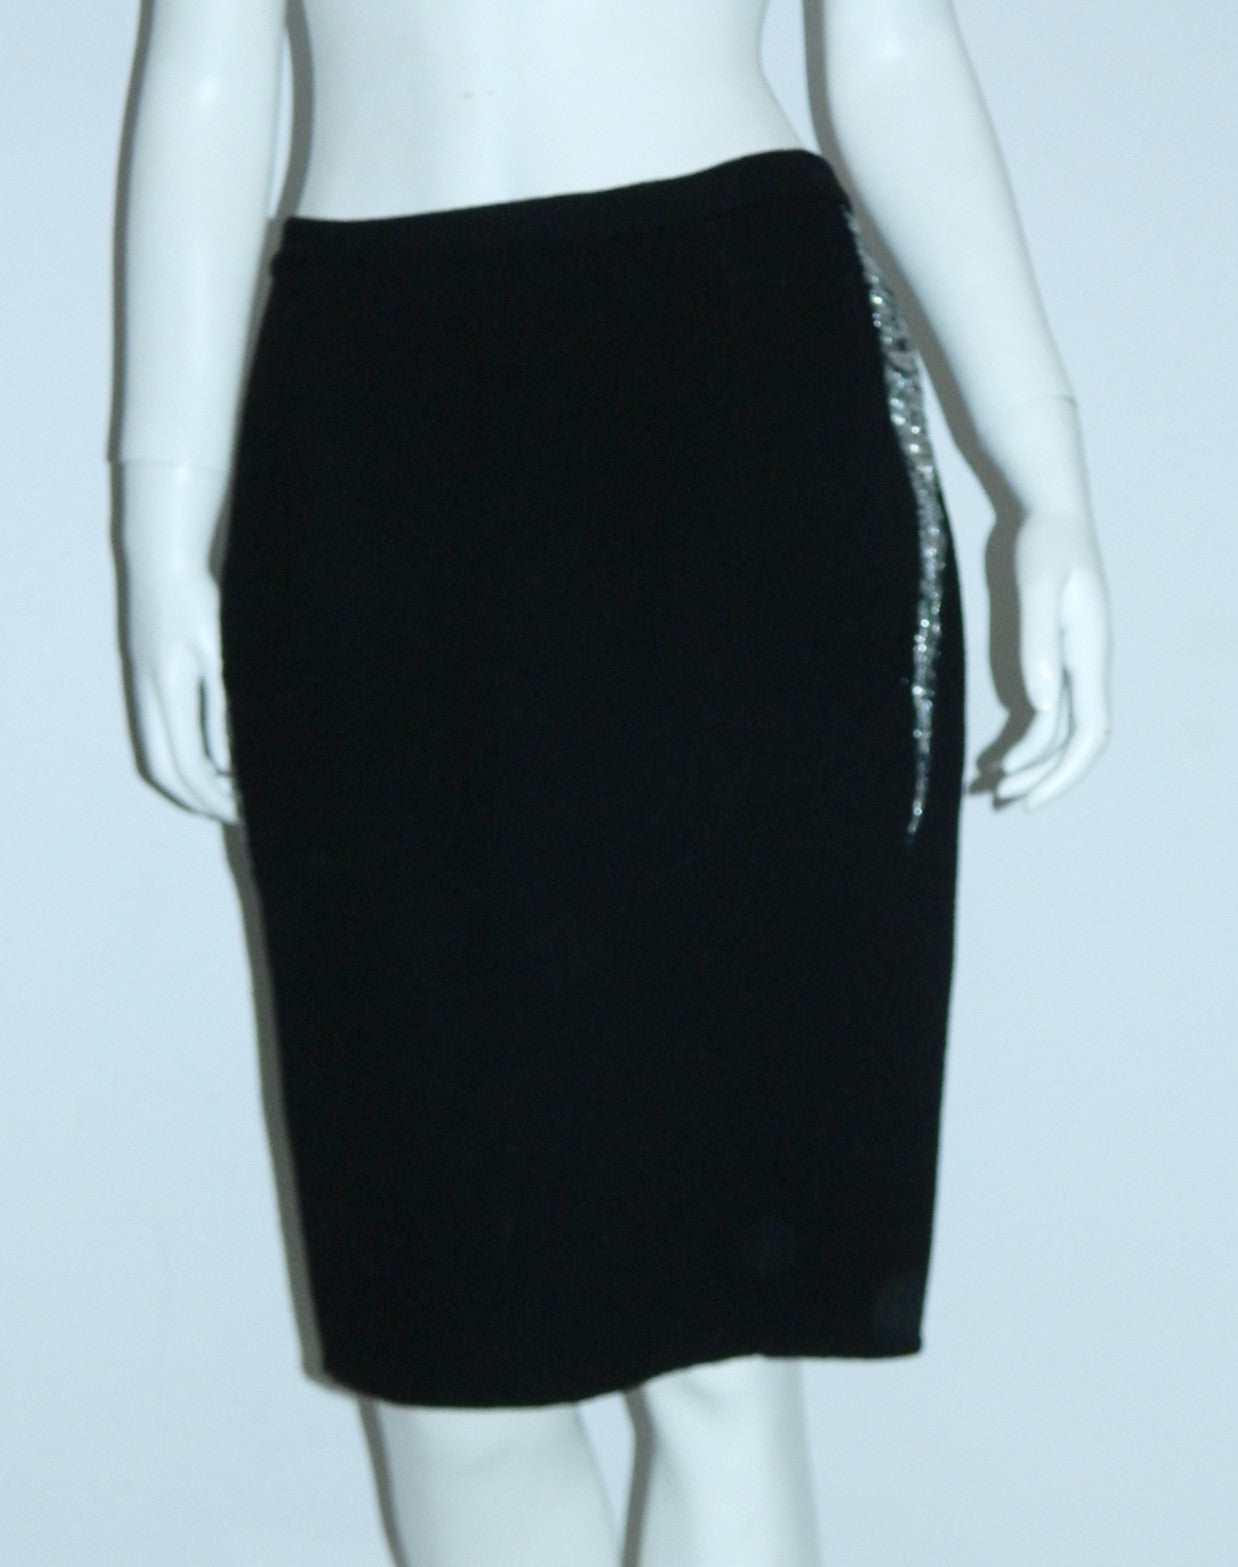 black wool Geoffrey Beene skirt silver lightning bolts / side seams 1980s vintage